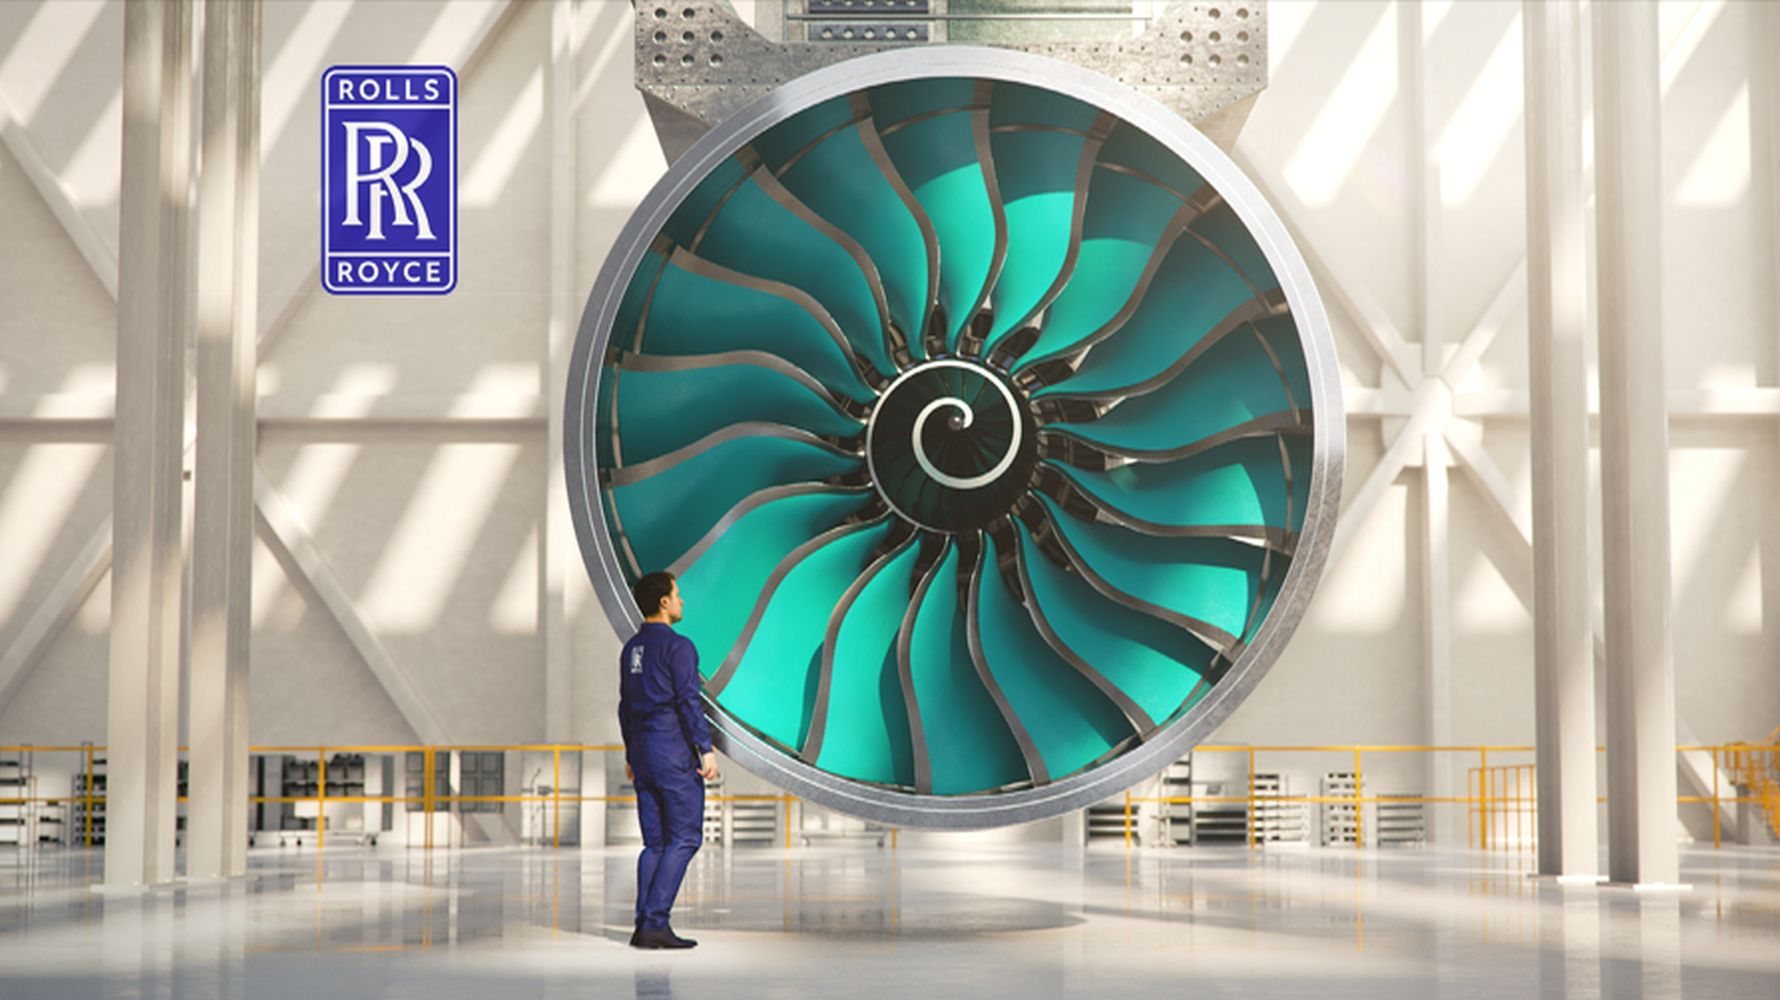 Rolls Royce started building the world's largest airplane engine